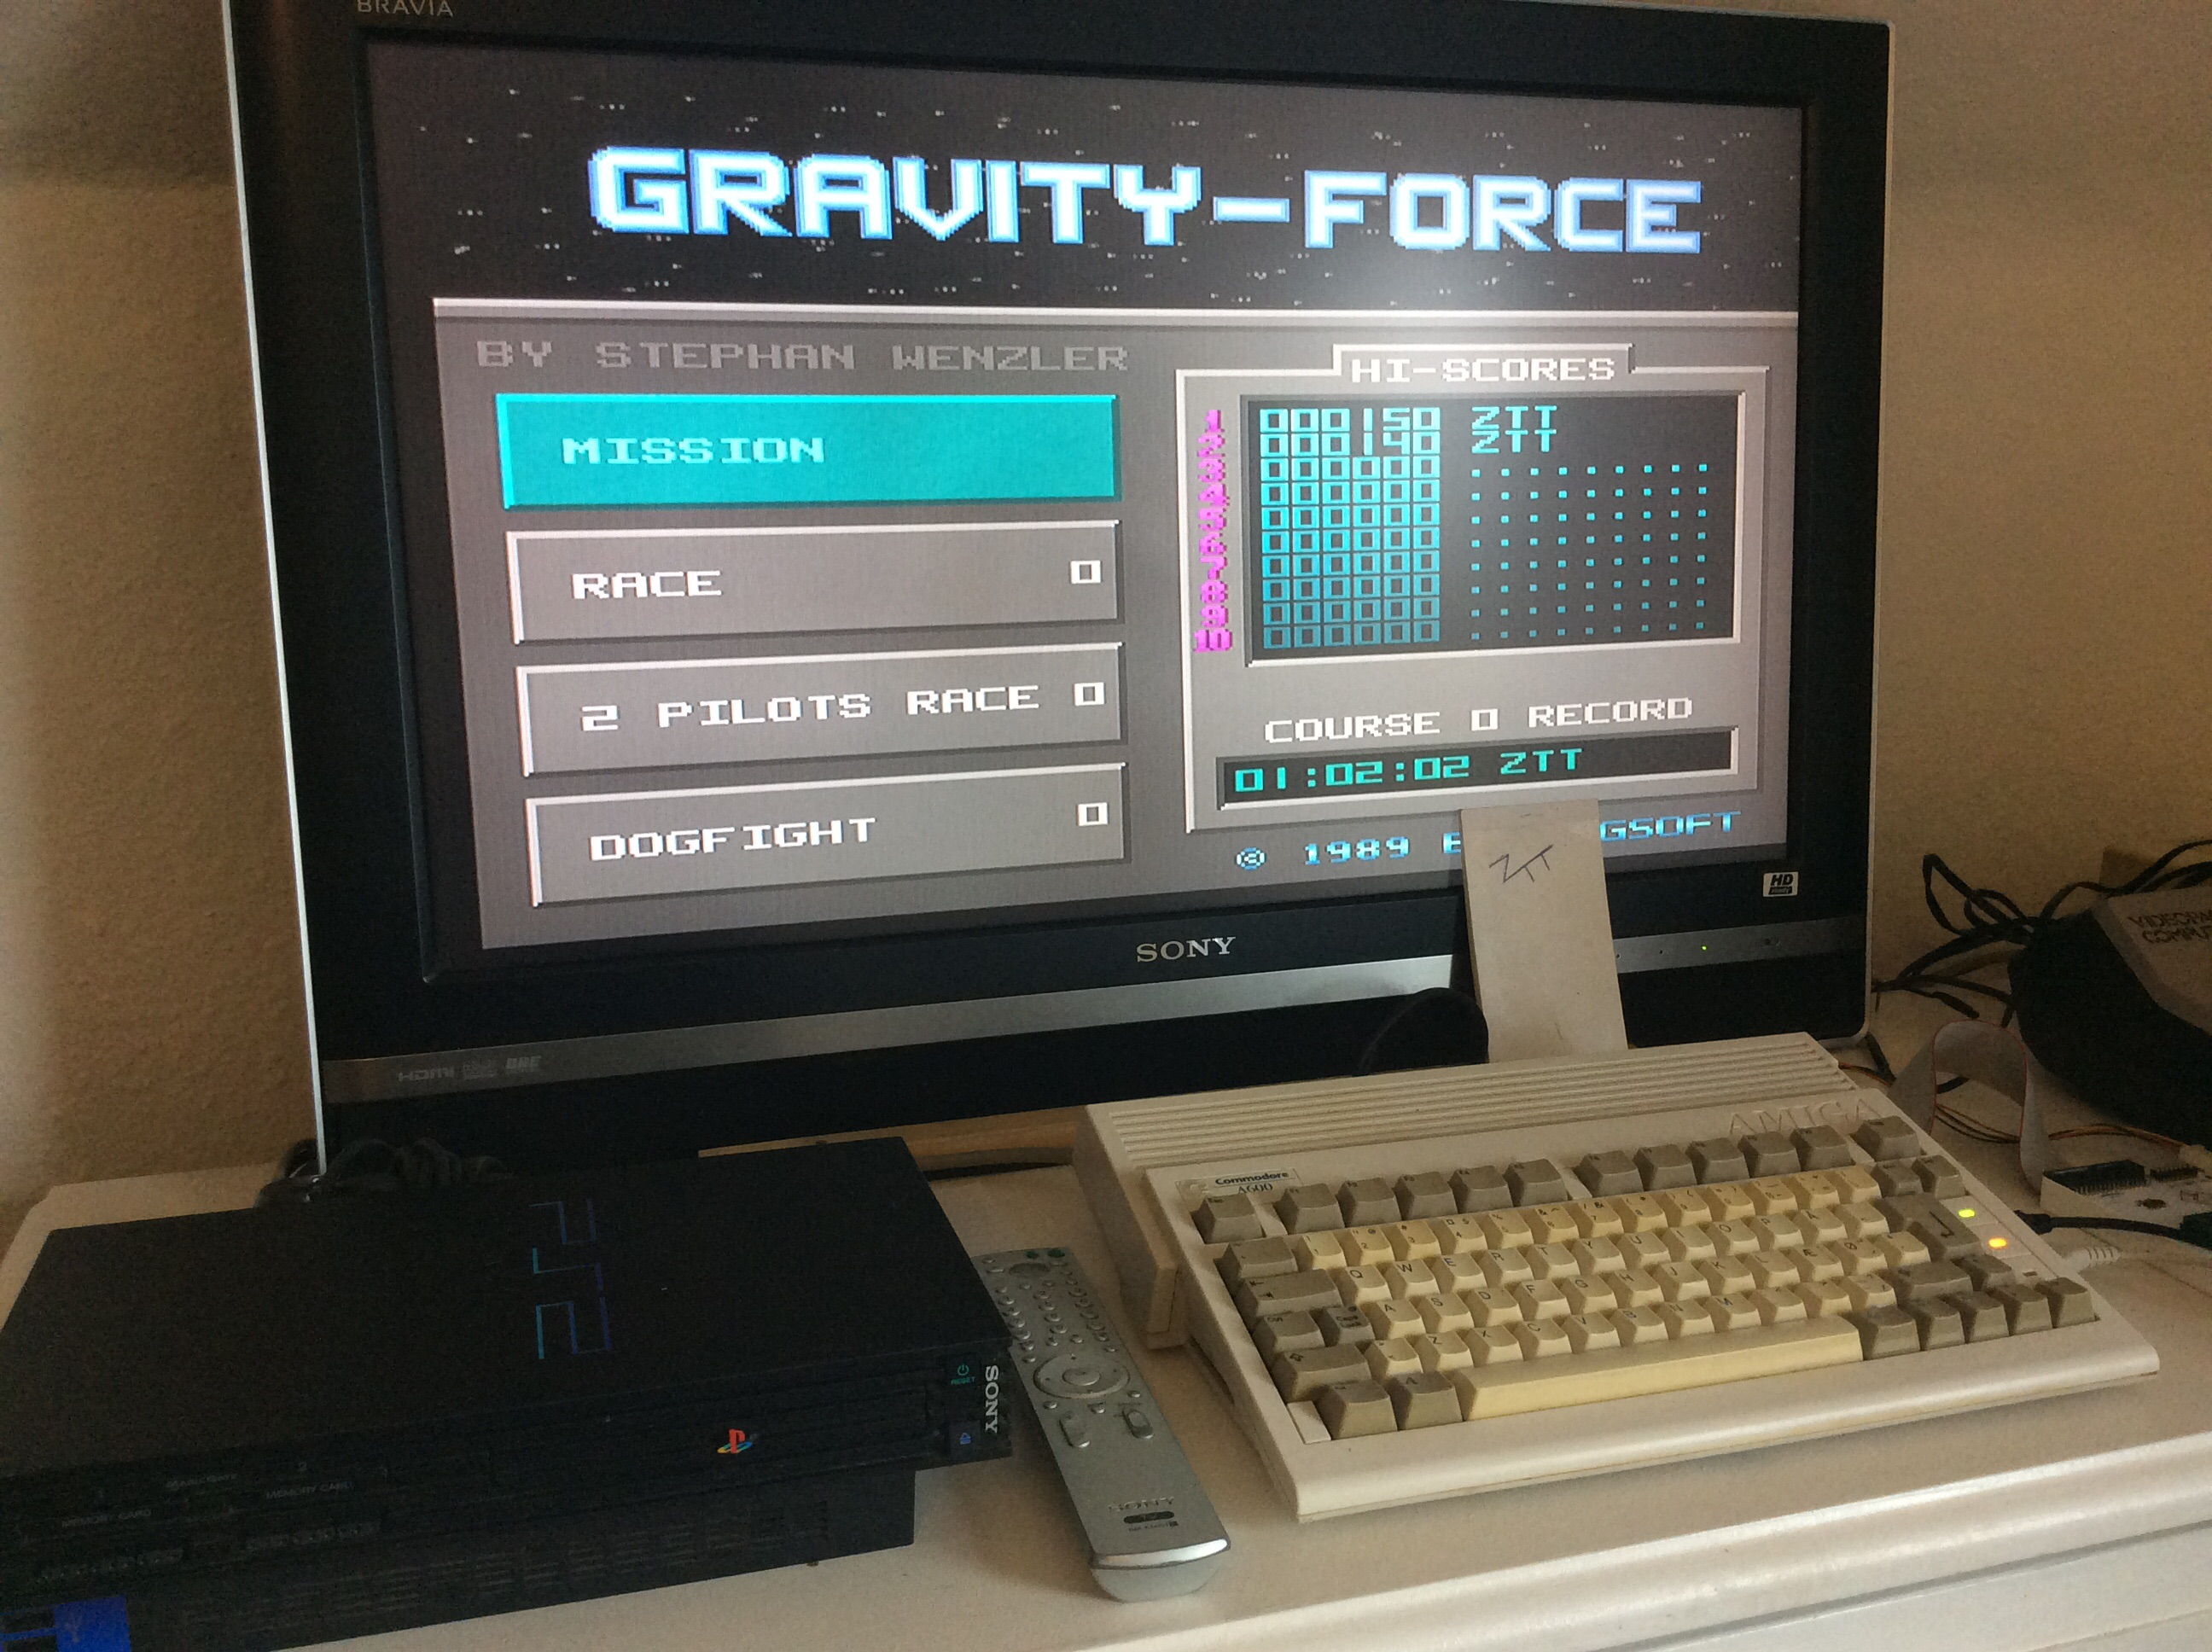 Frankie: Gravity Force [Mission] (Amiga) 150 points on 2016-08-11 11:18:12